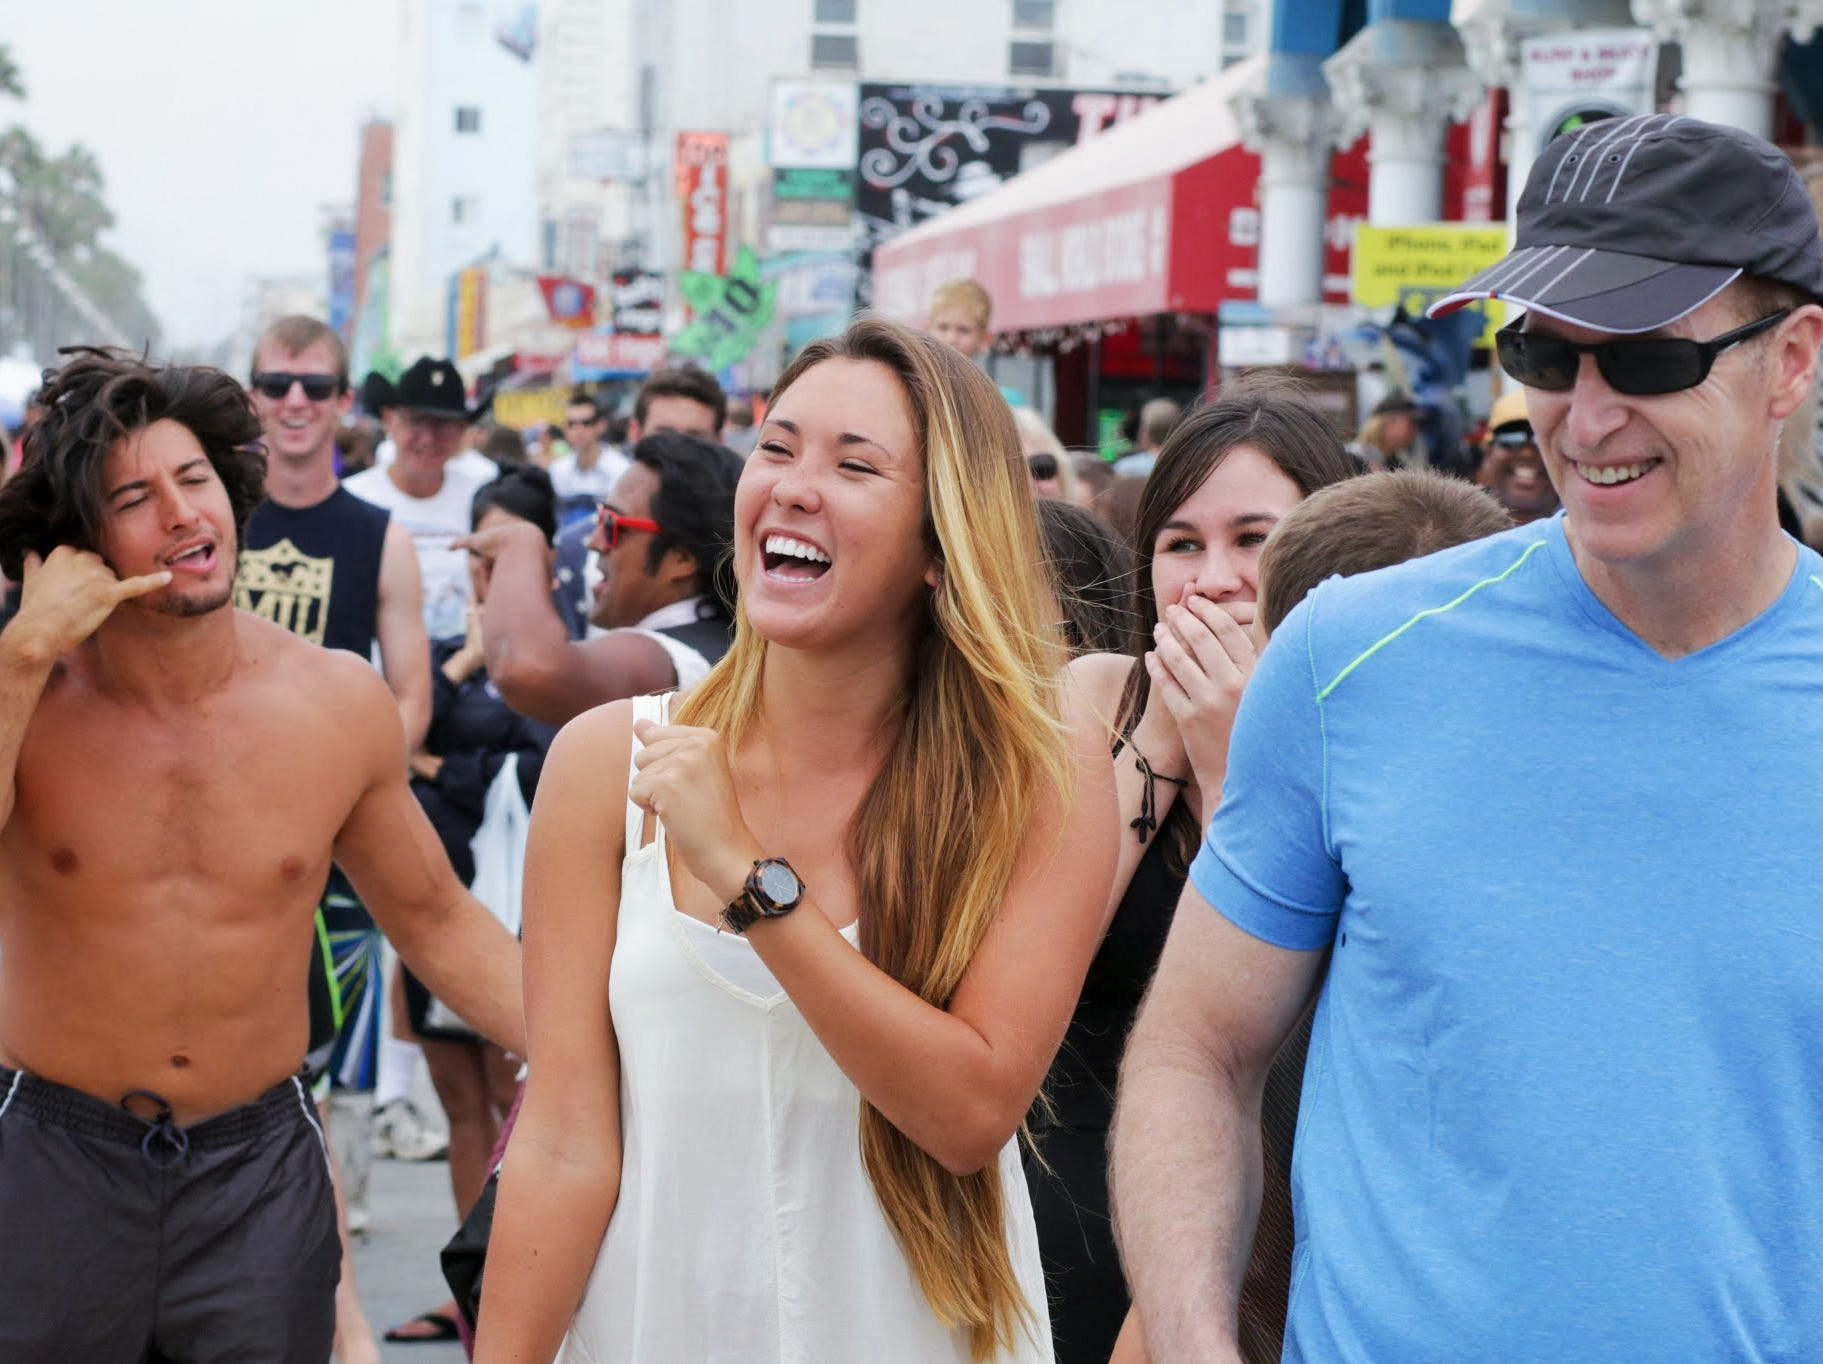 Visitors enjoy the show in Venice Beach.